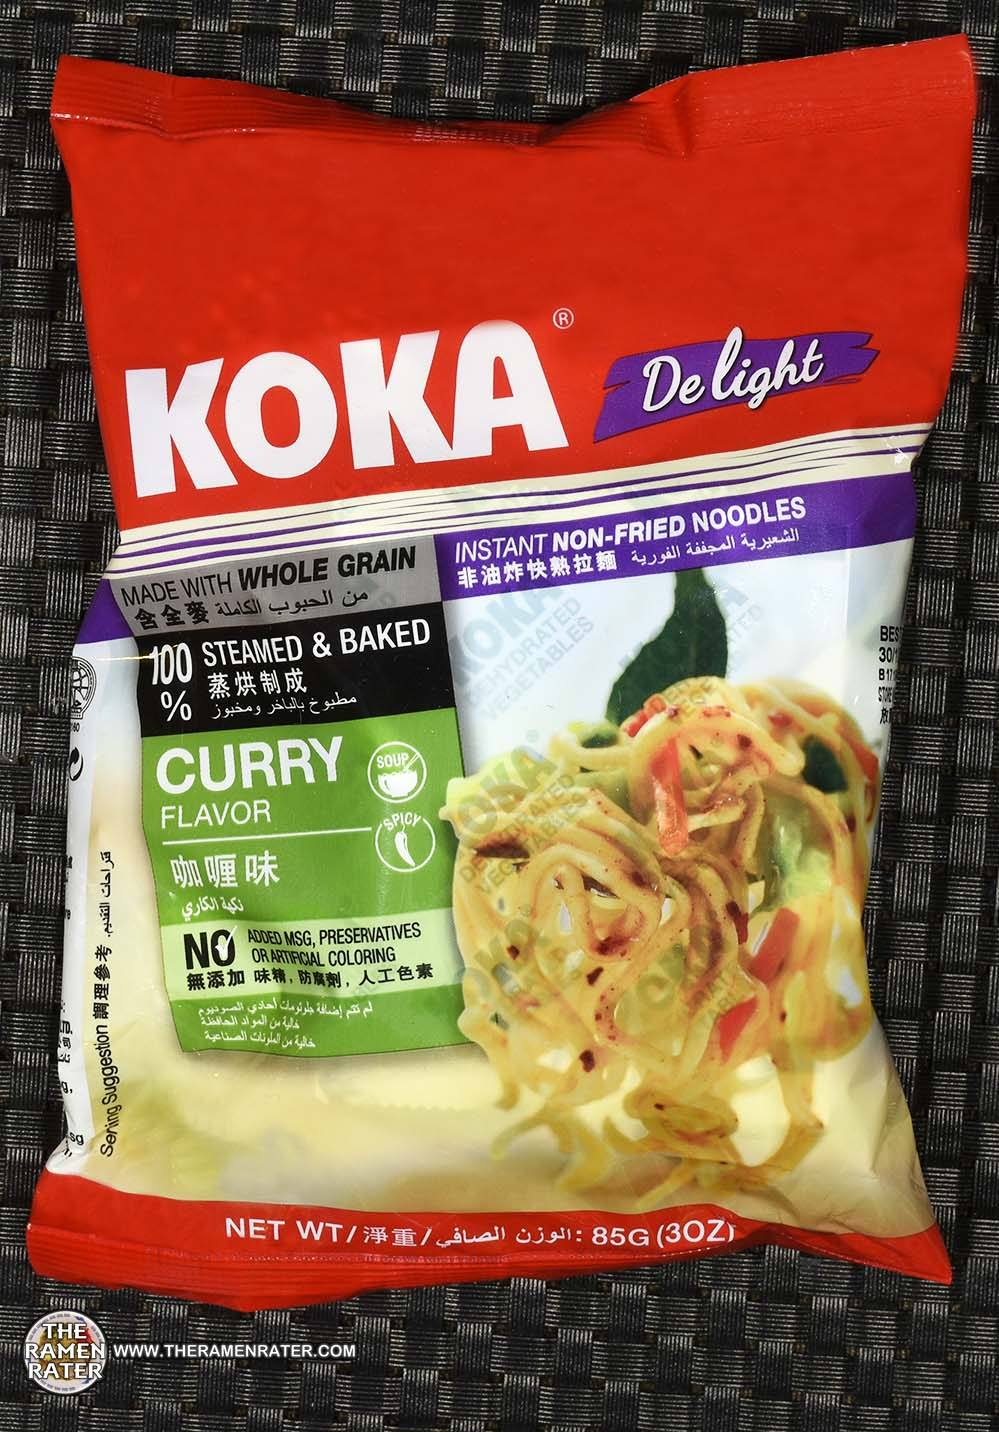 #2535: KOKA Delight Curry Flavor Instant Non-Fried Noodles - Singapore - The Ramen Rater